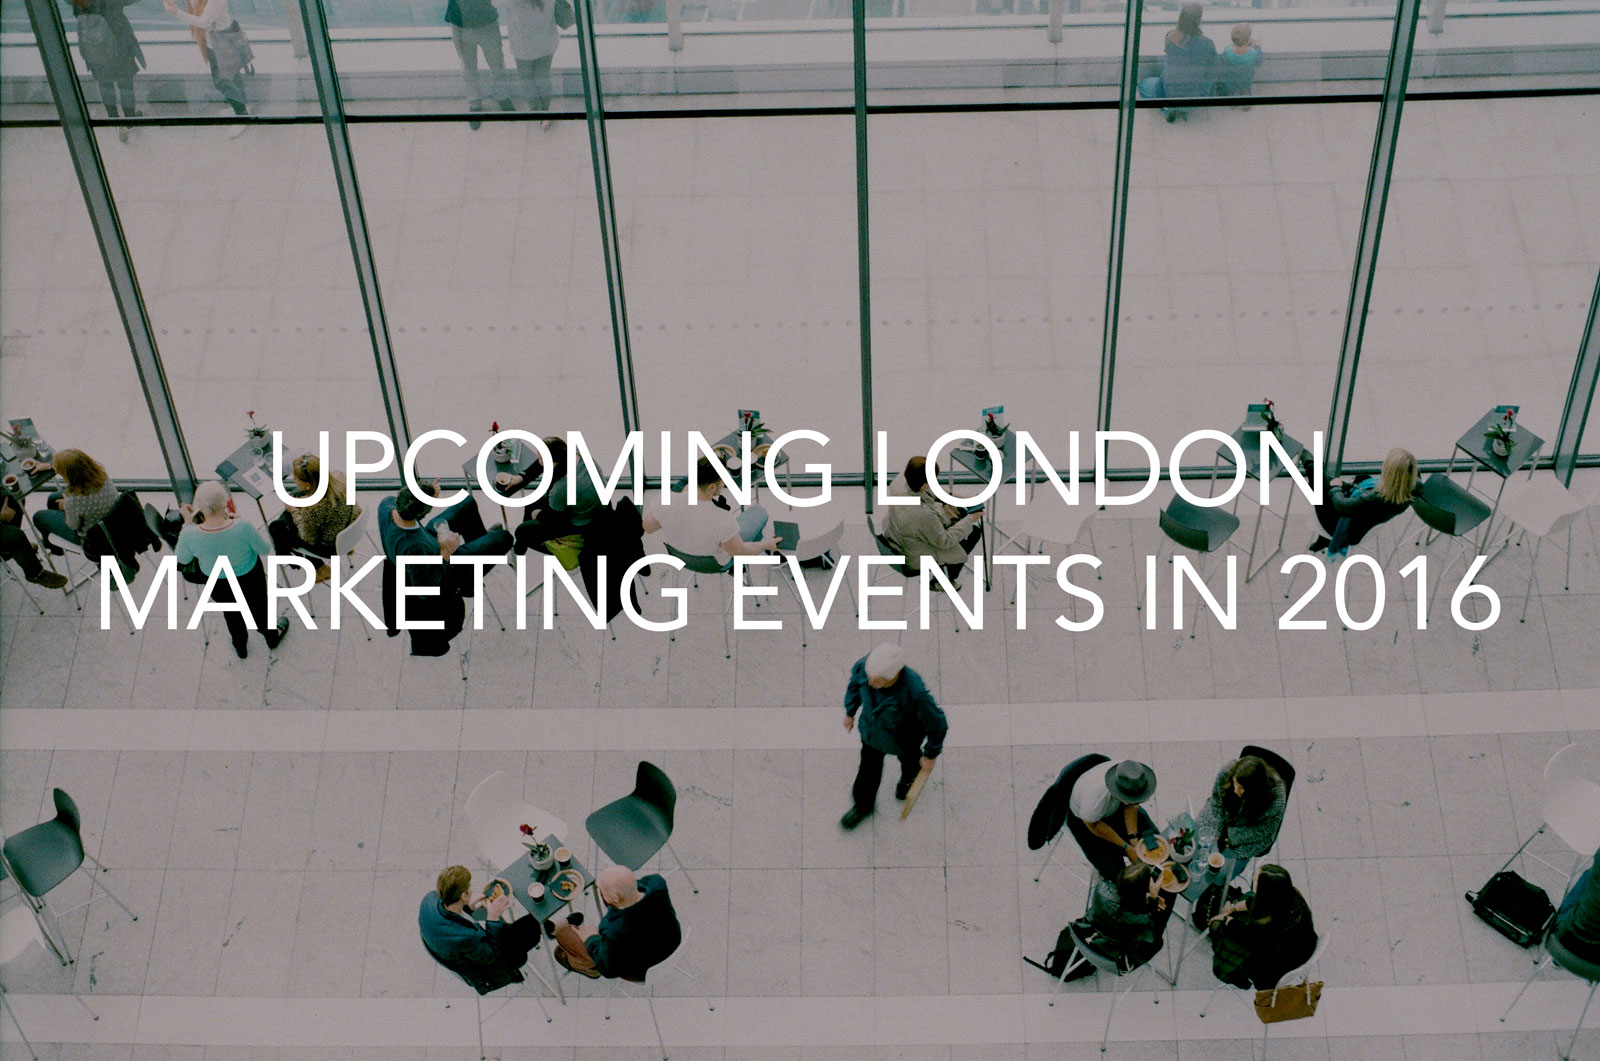 featured image for article on upcoming London marketing events in 2016